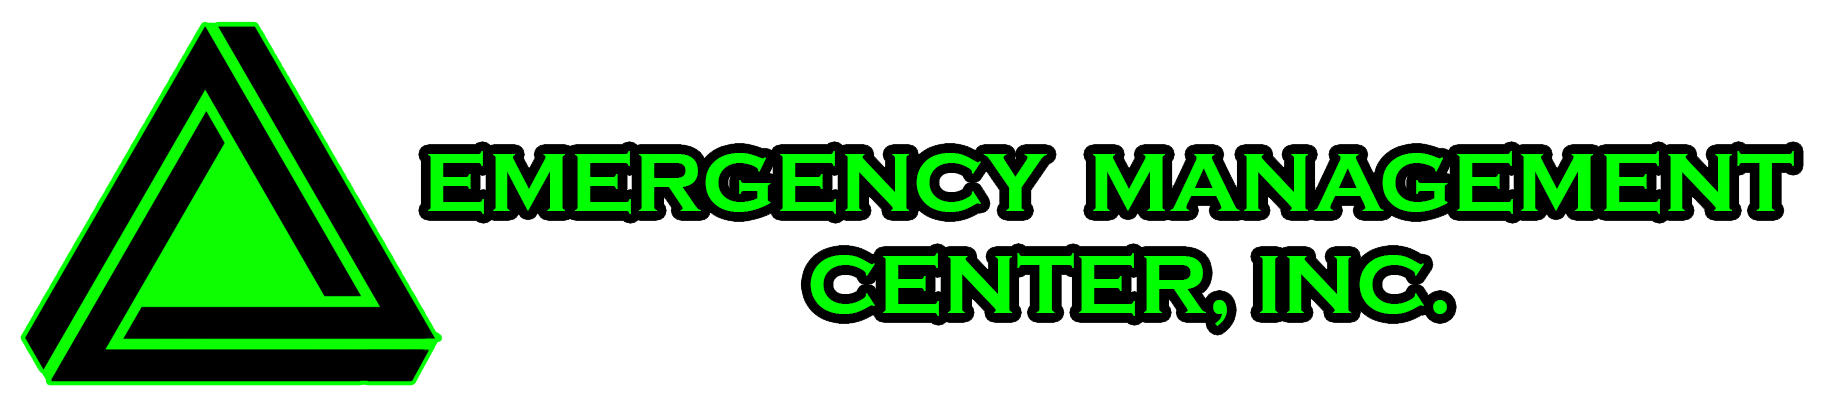 Emergency Management Center, Inc.